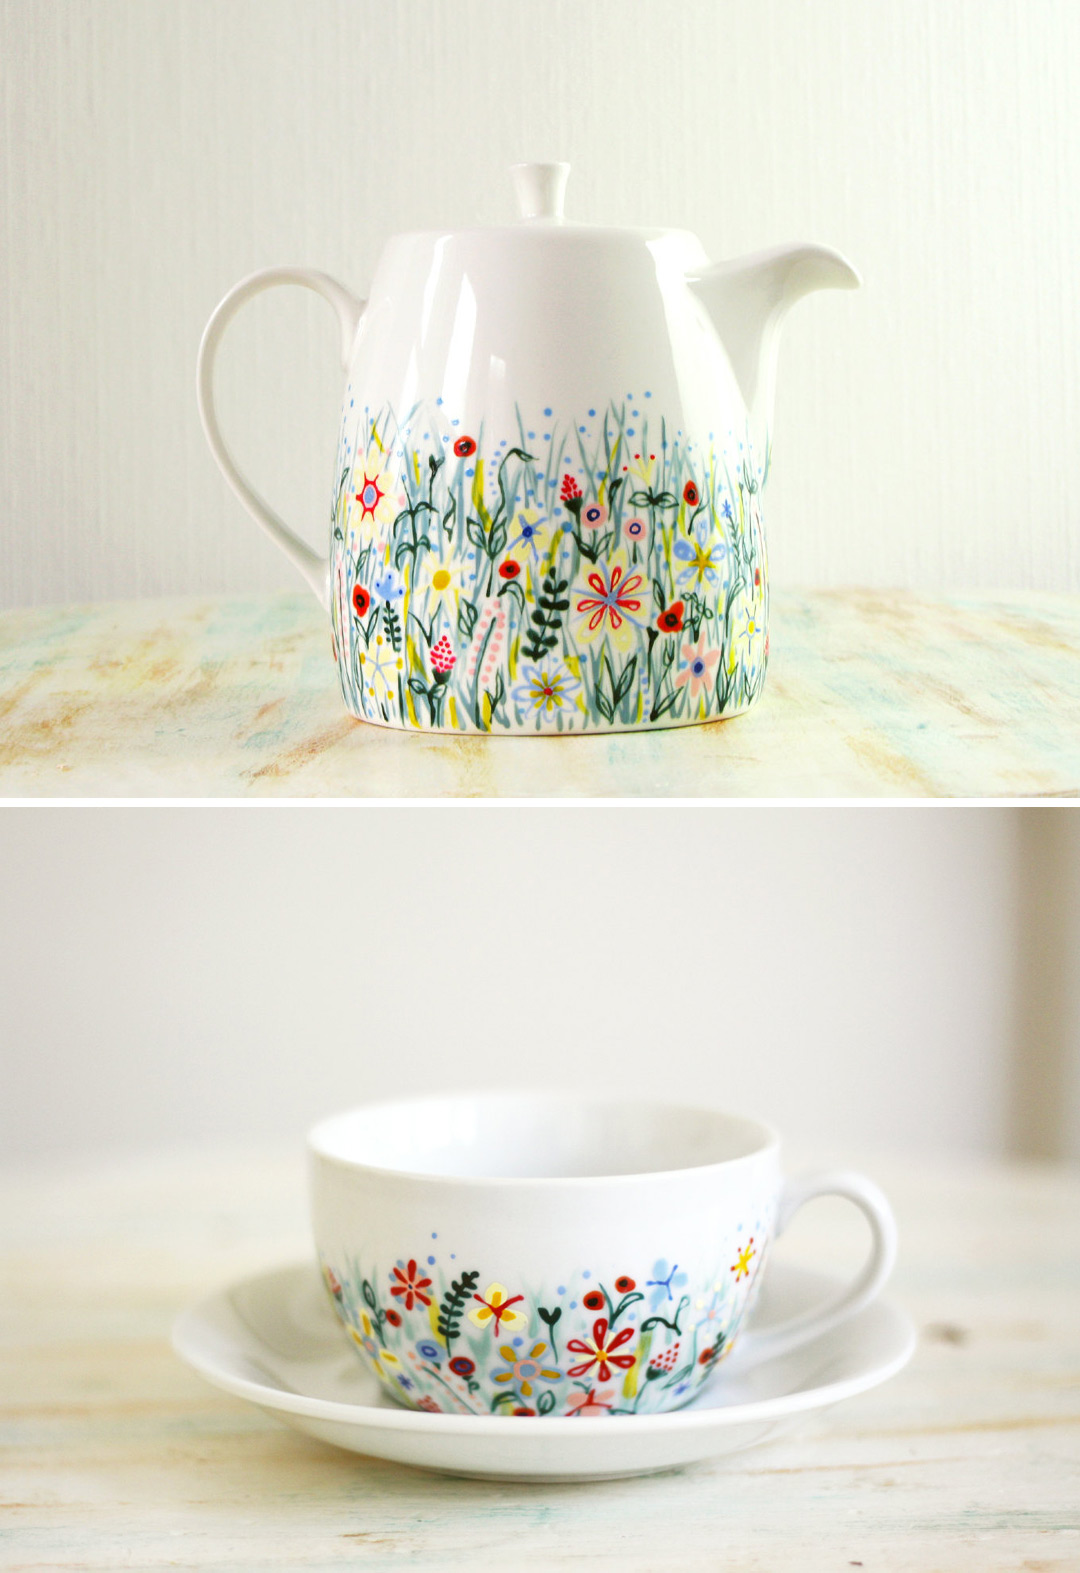 painted ceramics by roootree